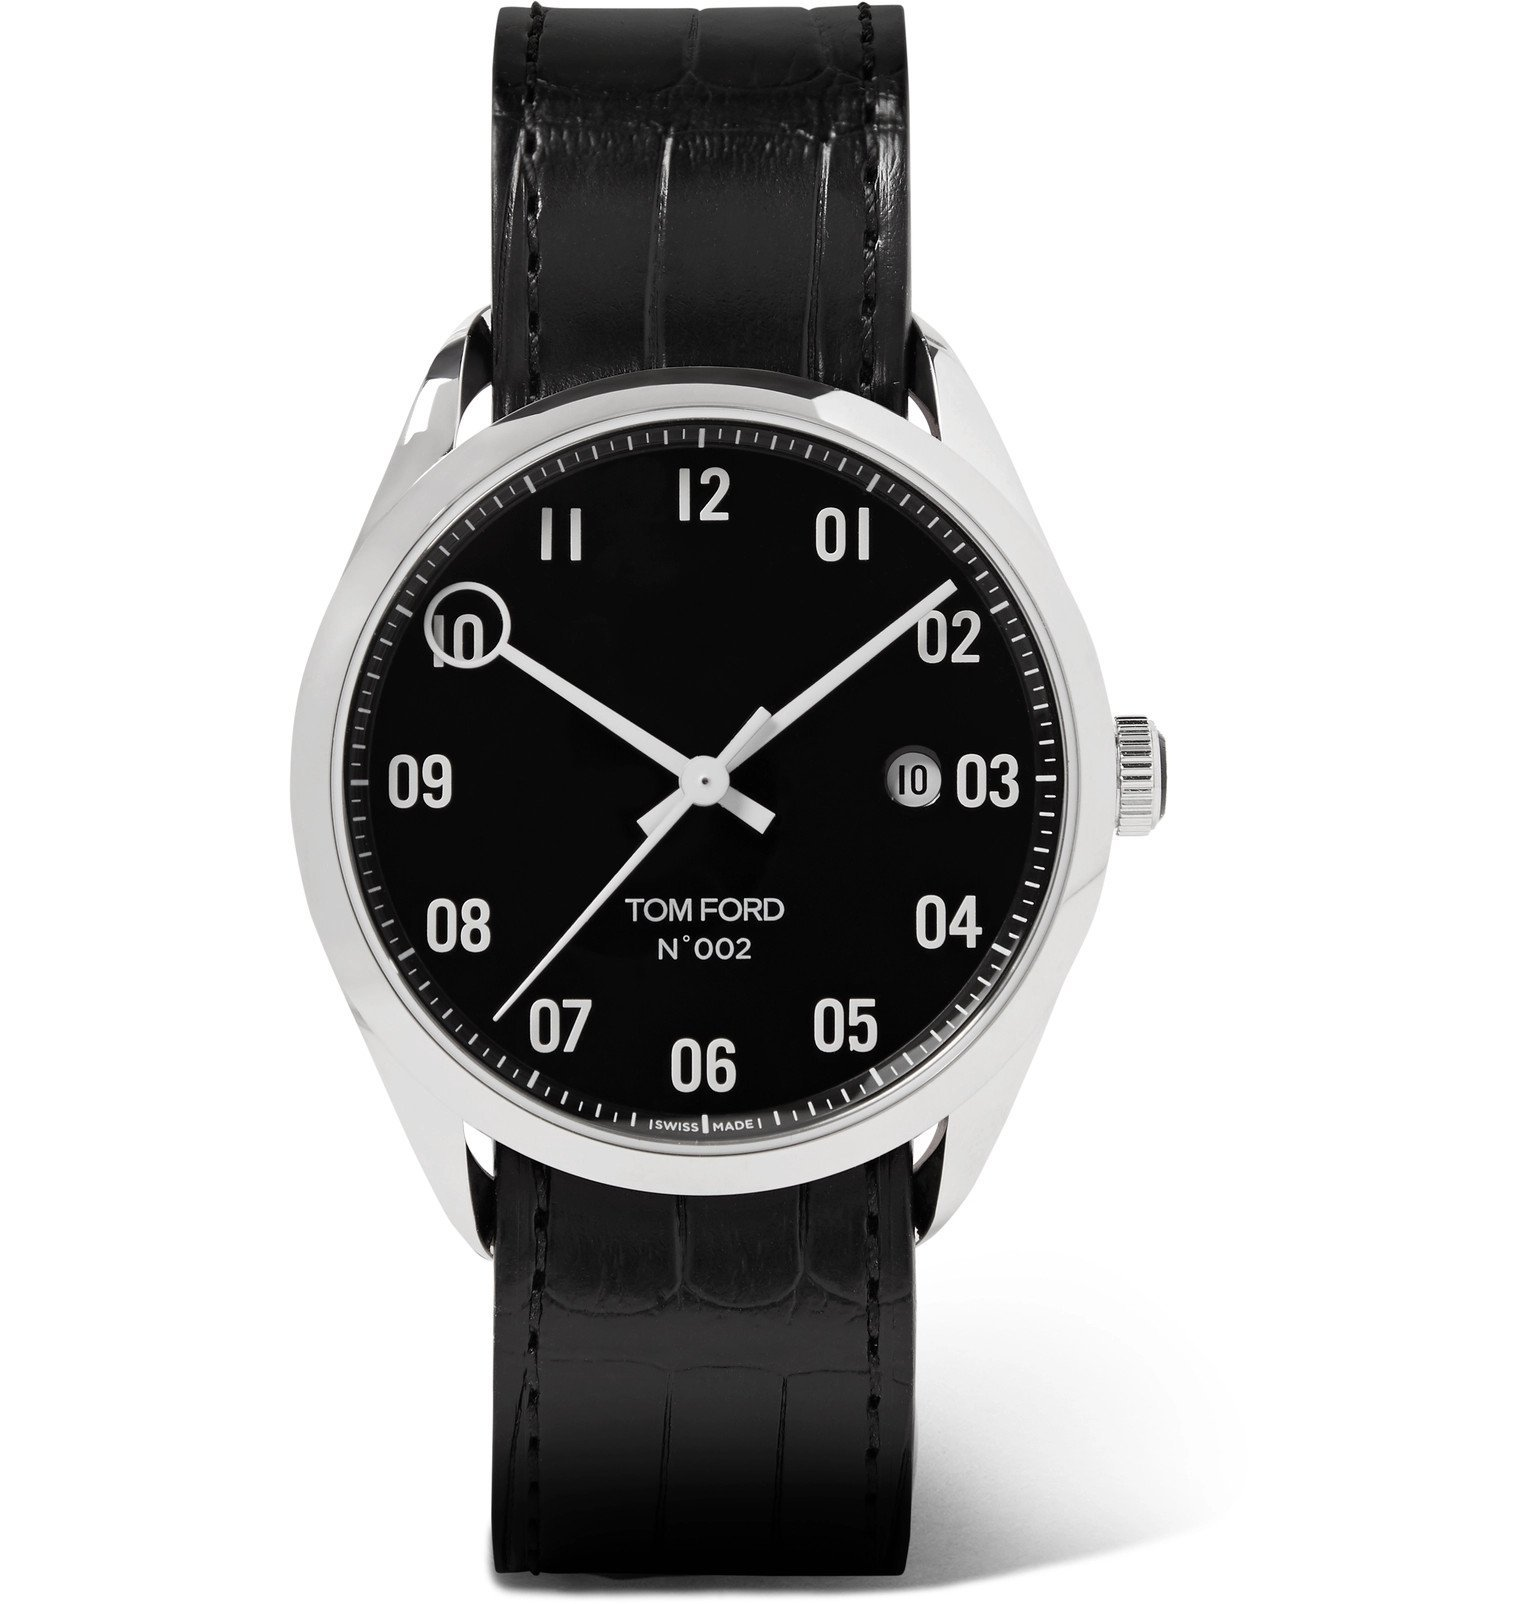 Tom Ford Timepieces - 002 40mm Stainless Steel and Alligator Watch - Black